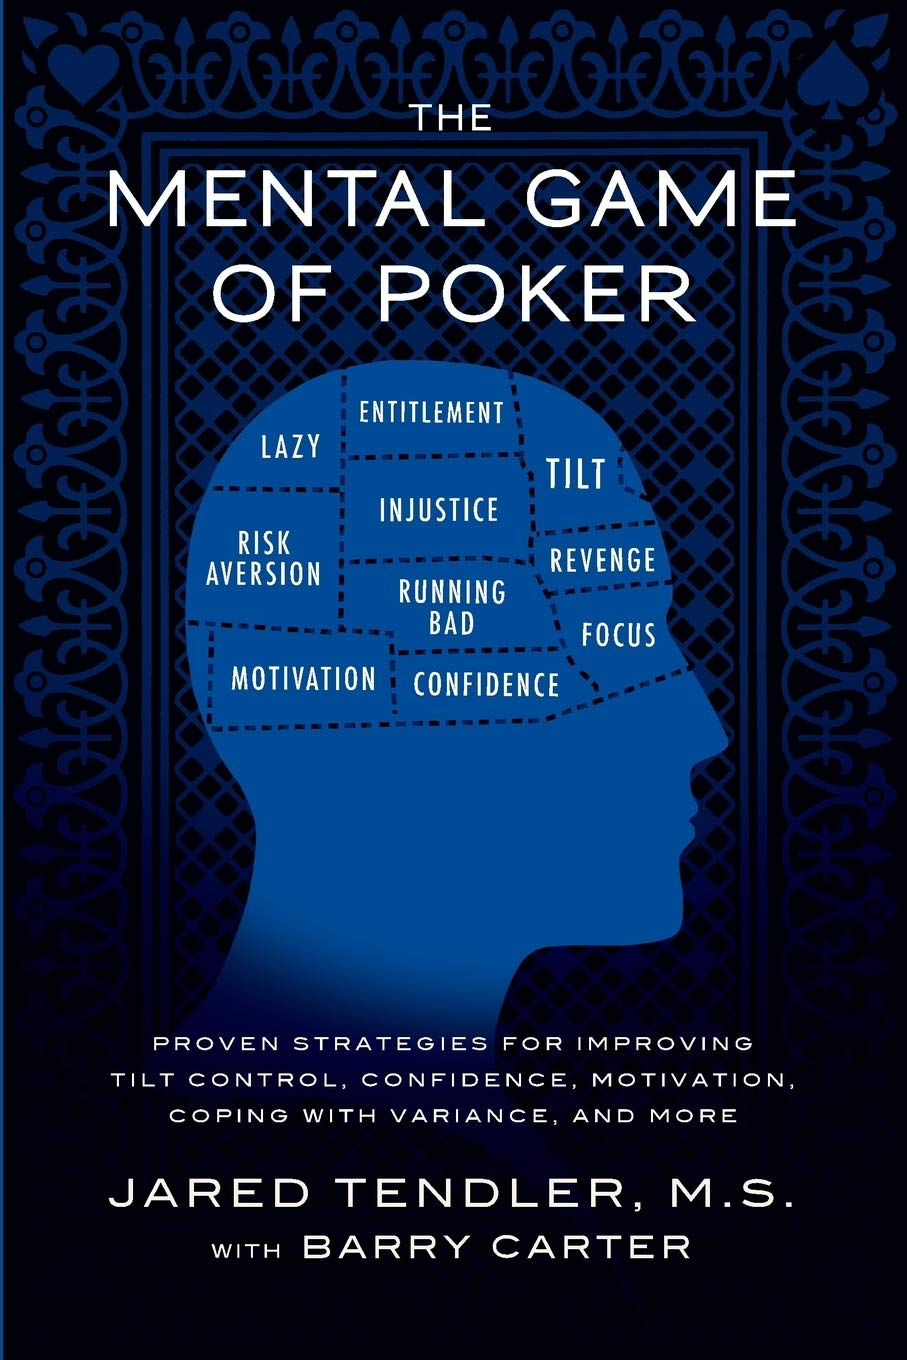 ספר פוקר - the mental game of poker